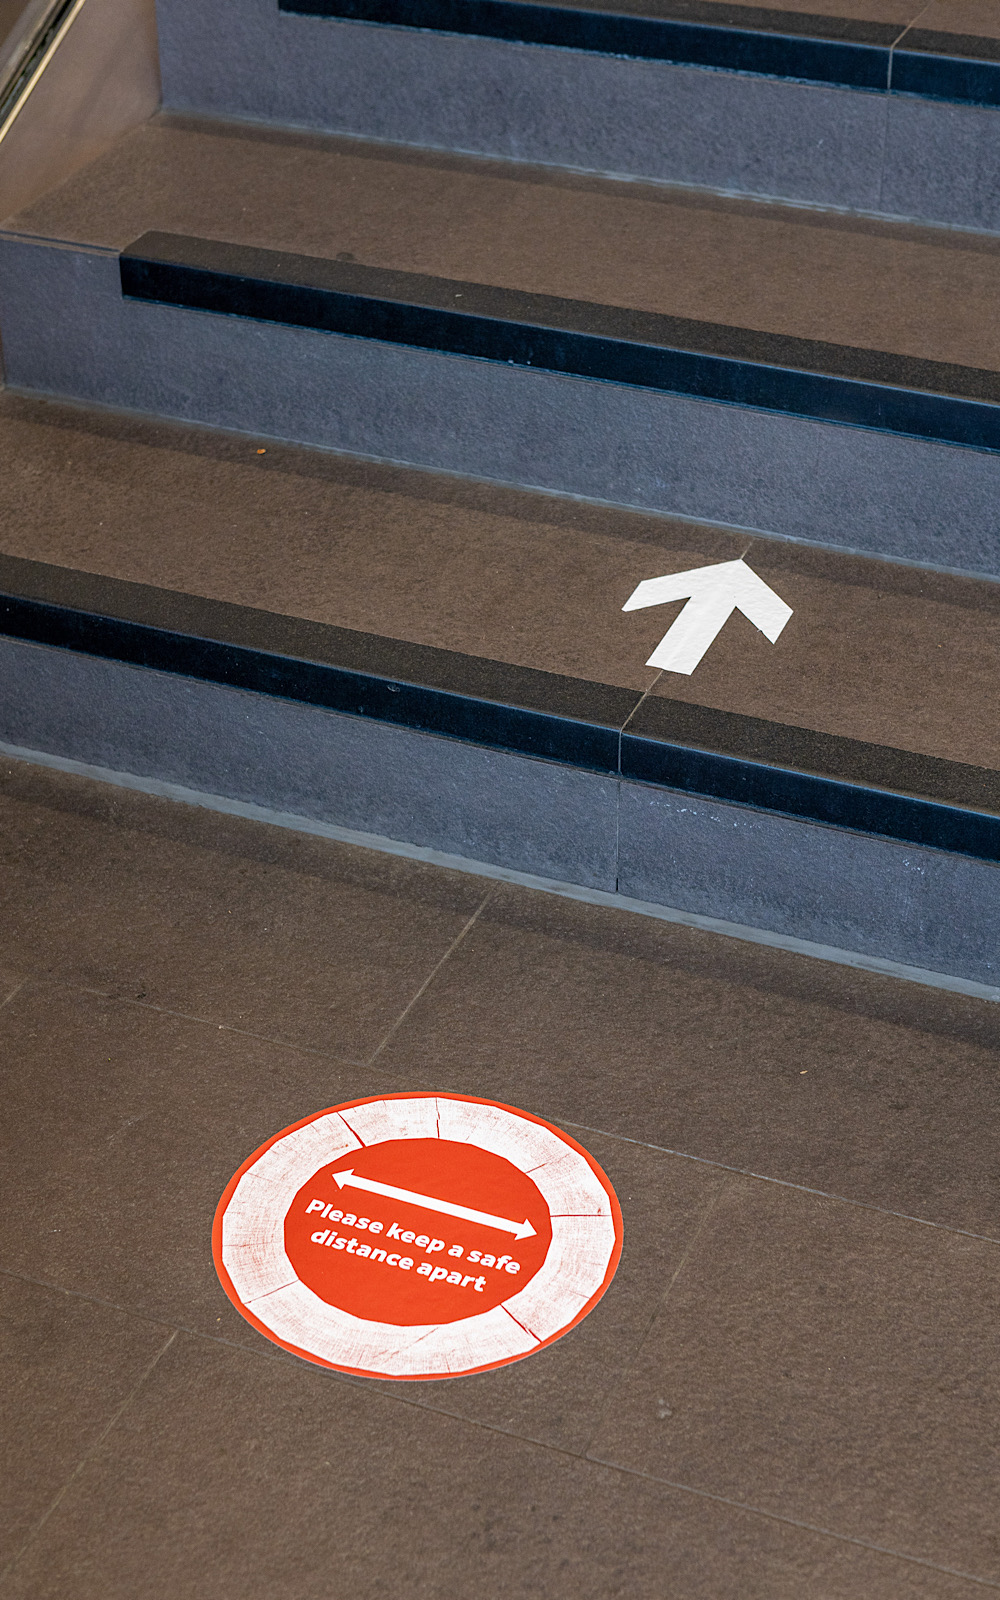 Stickers on a black floor show arrows and also notices to keep a safe distance from others